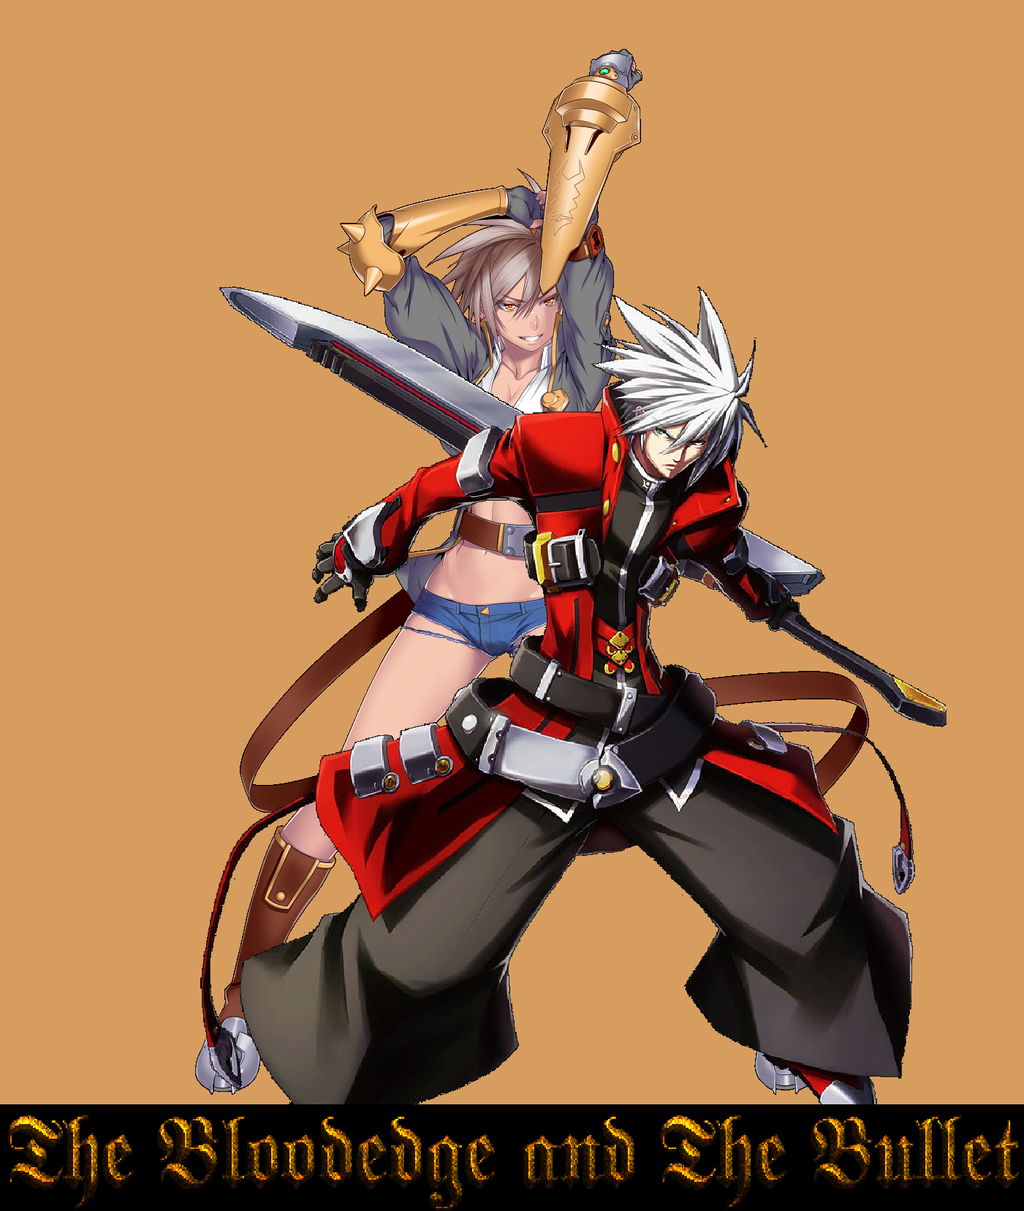 ragna and bullet by wolfblade111 on deviantart